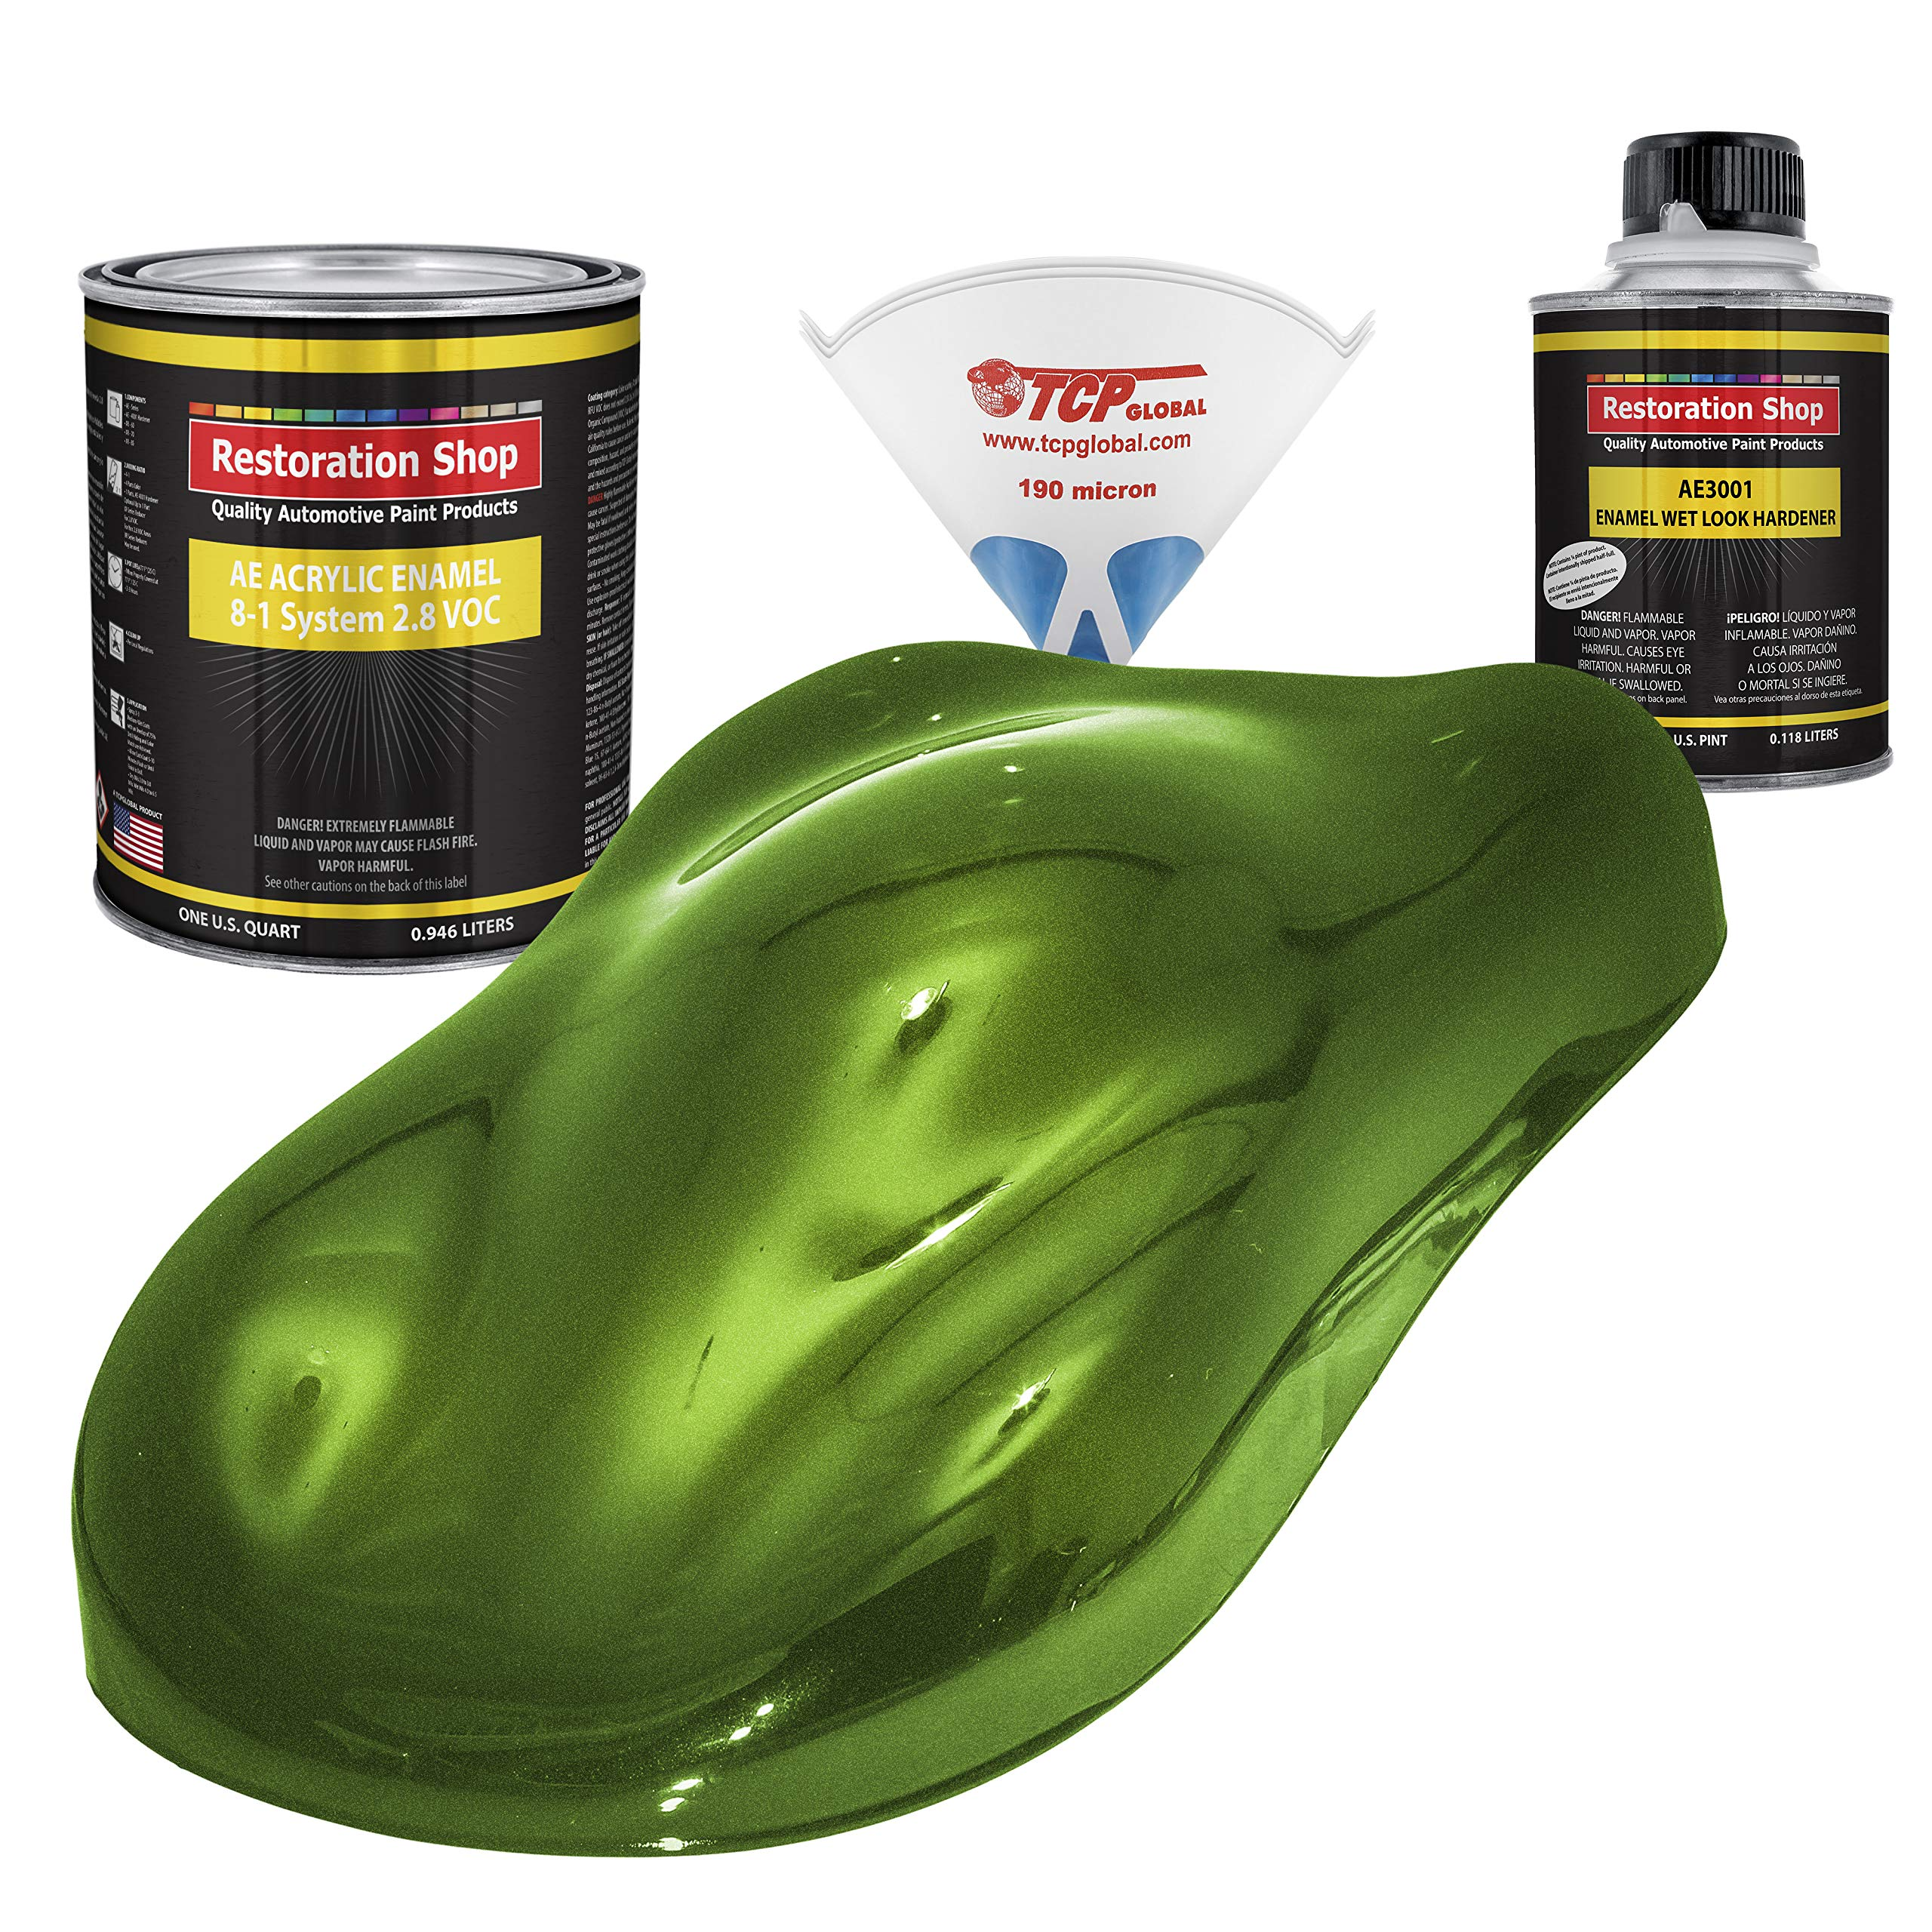 Restoration Shop - Synergy Green Metallic Acrylic Enamel Auto Paint - Complete Quart Paint Kit - Professional Single Stage High Gloss Automotive, Car, Truck, Equipment Coating, 8:1 Mix Ratio, 2.8 VOC